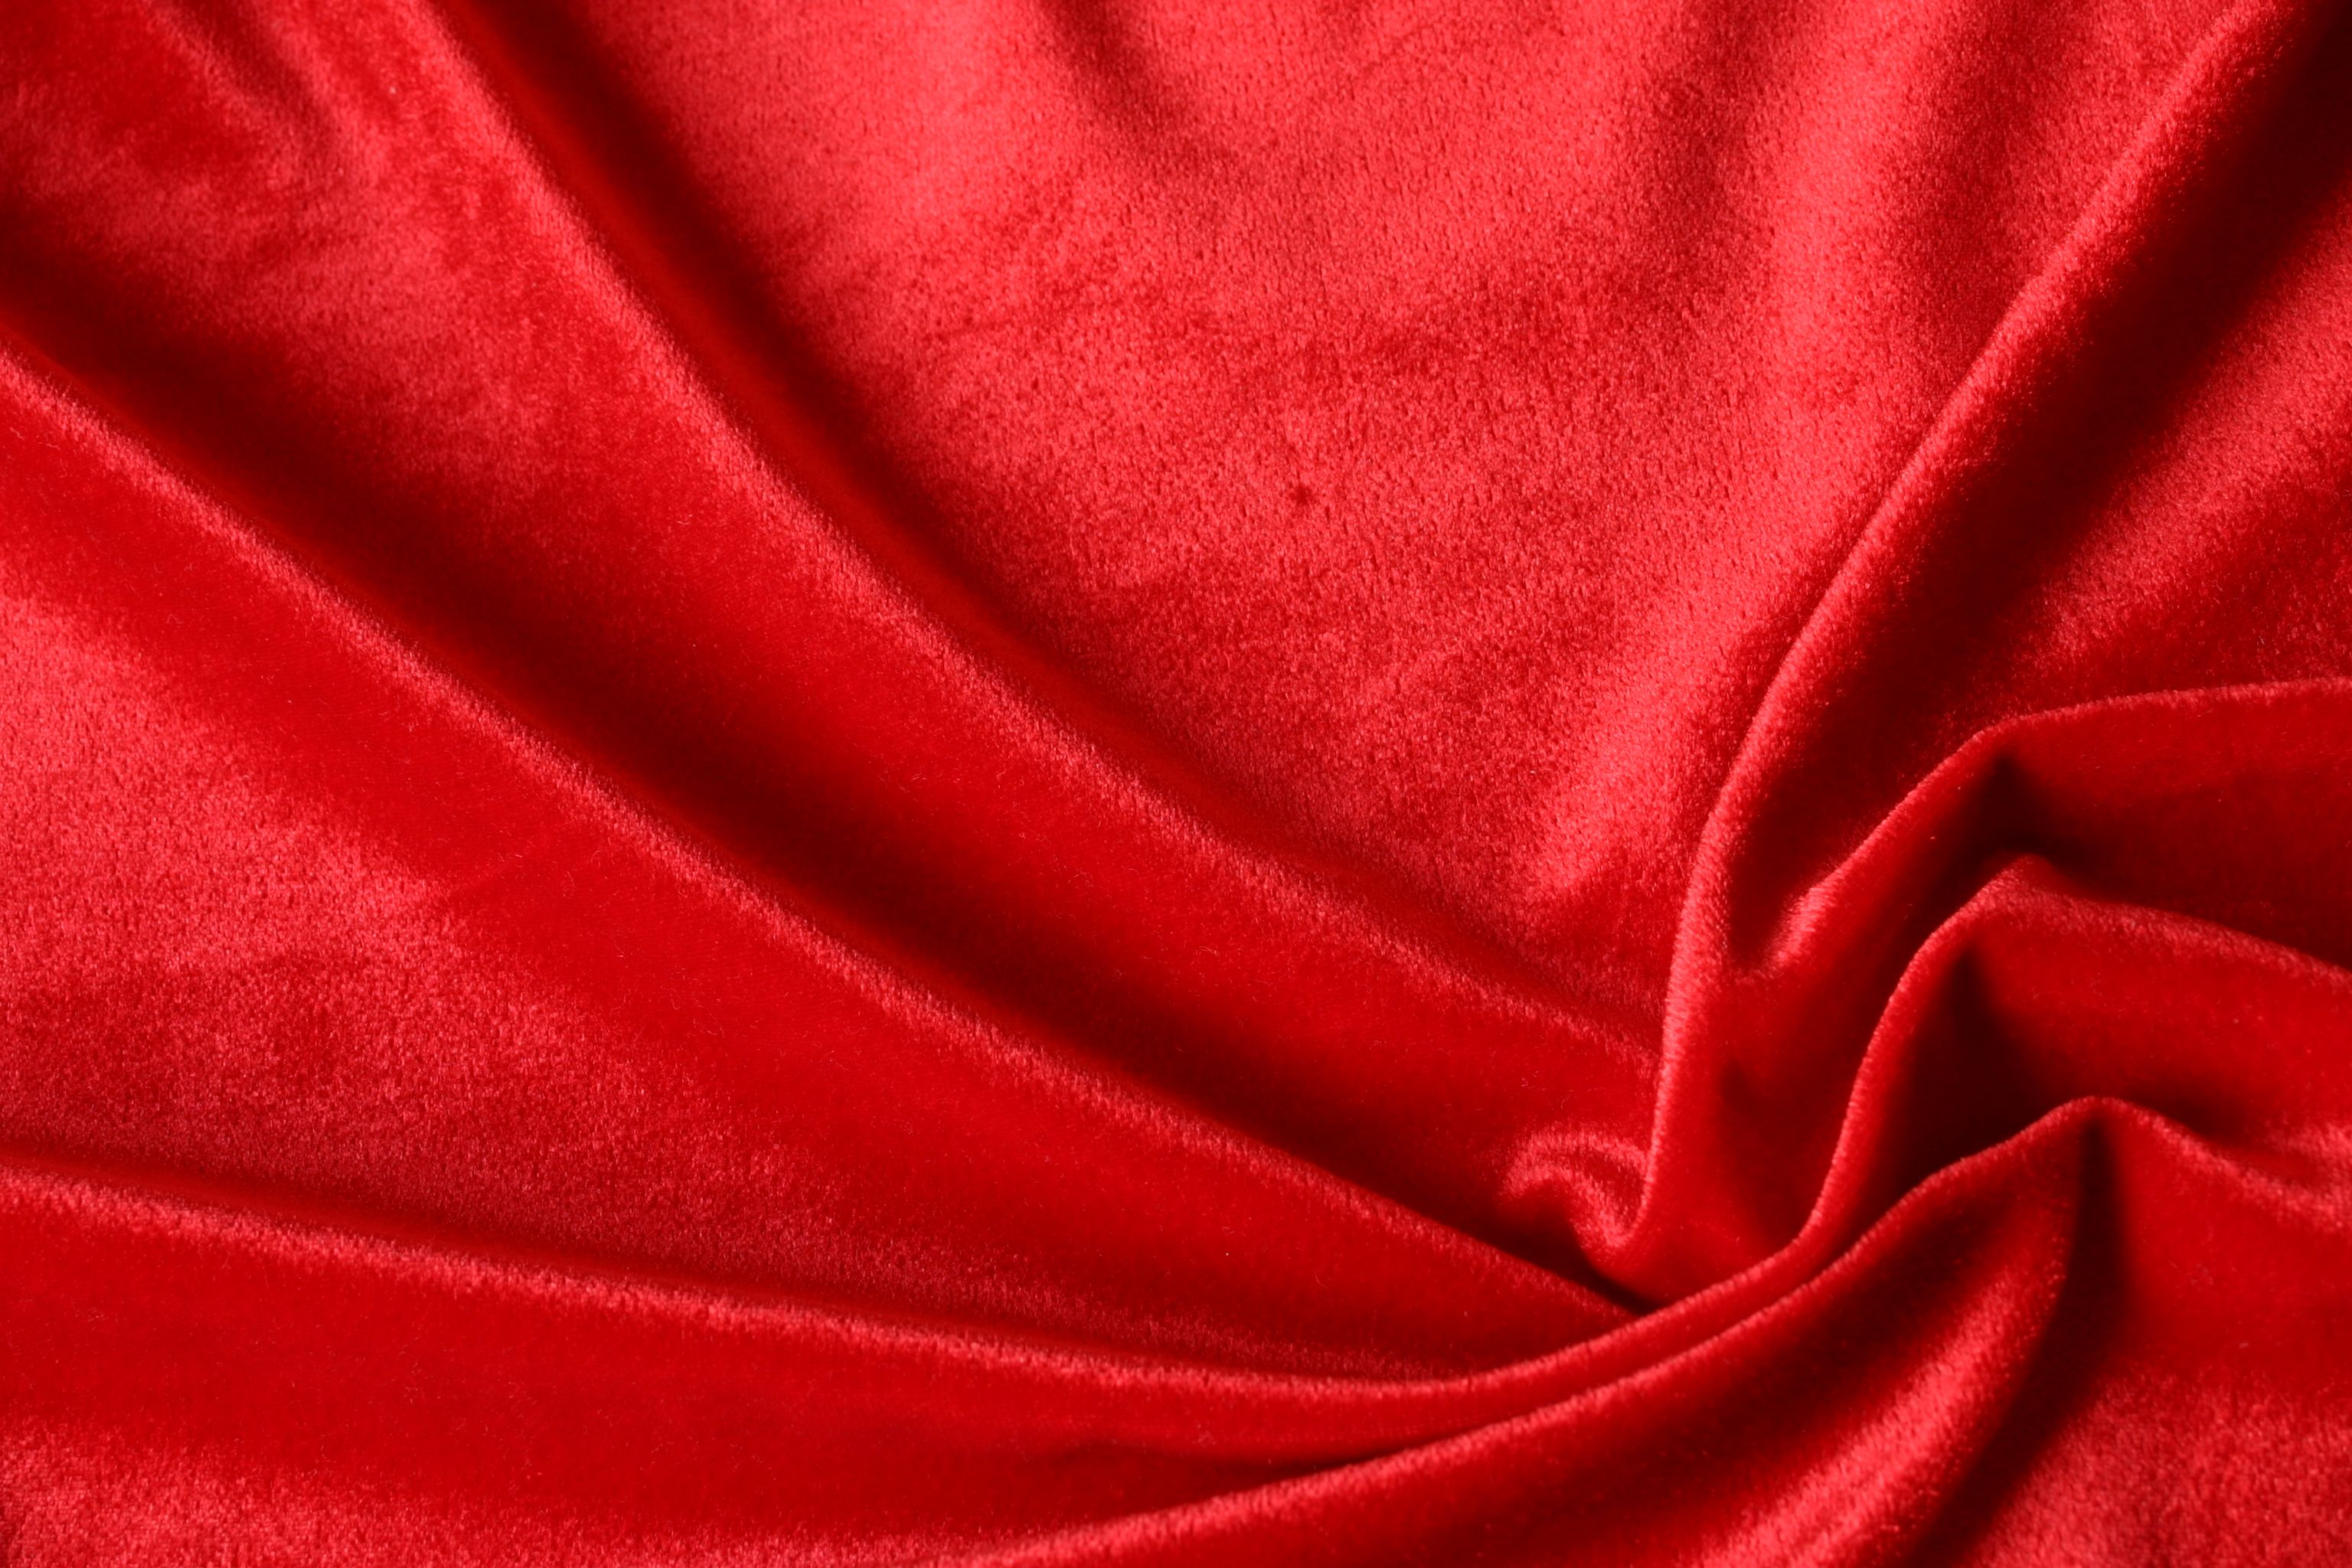 red velvet, texture, background, red velvet texture